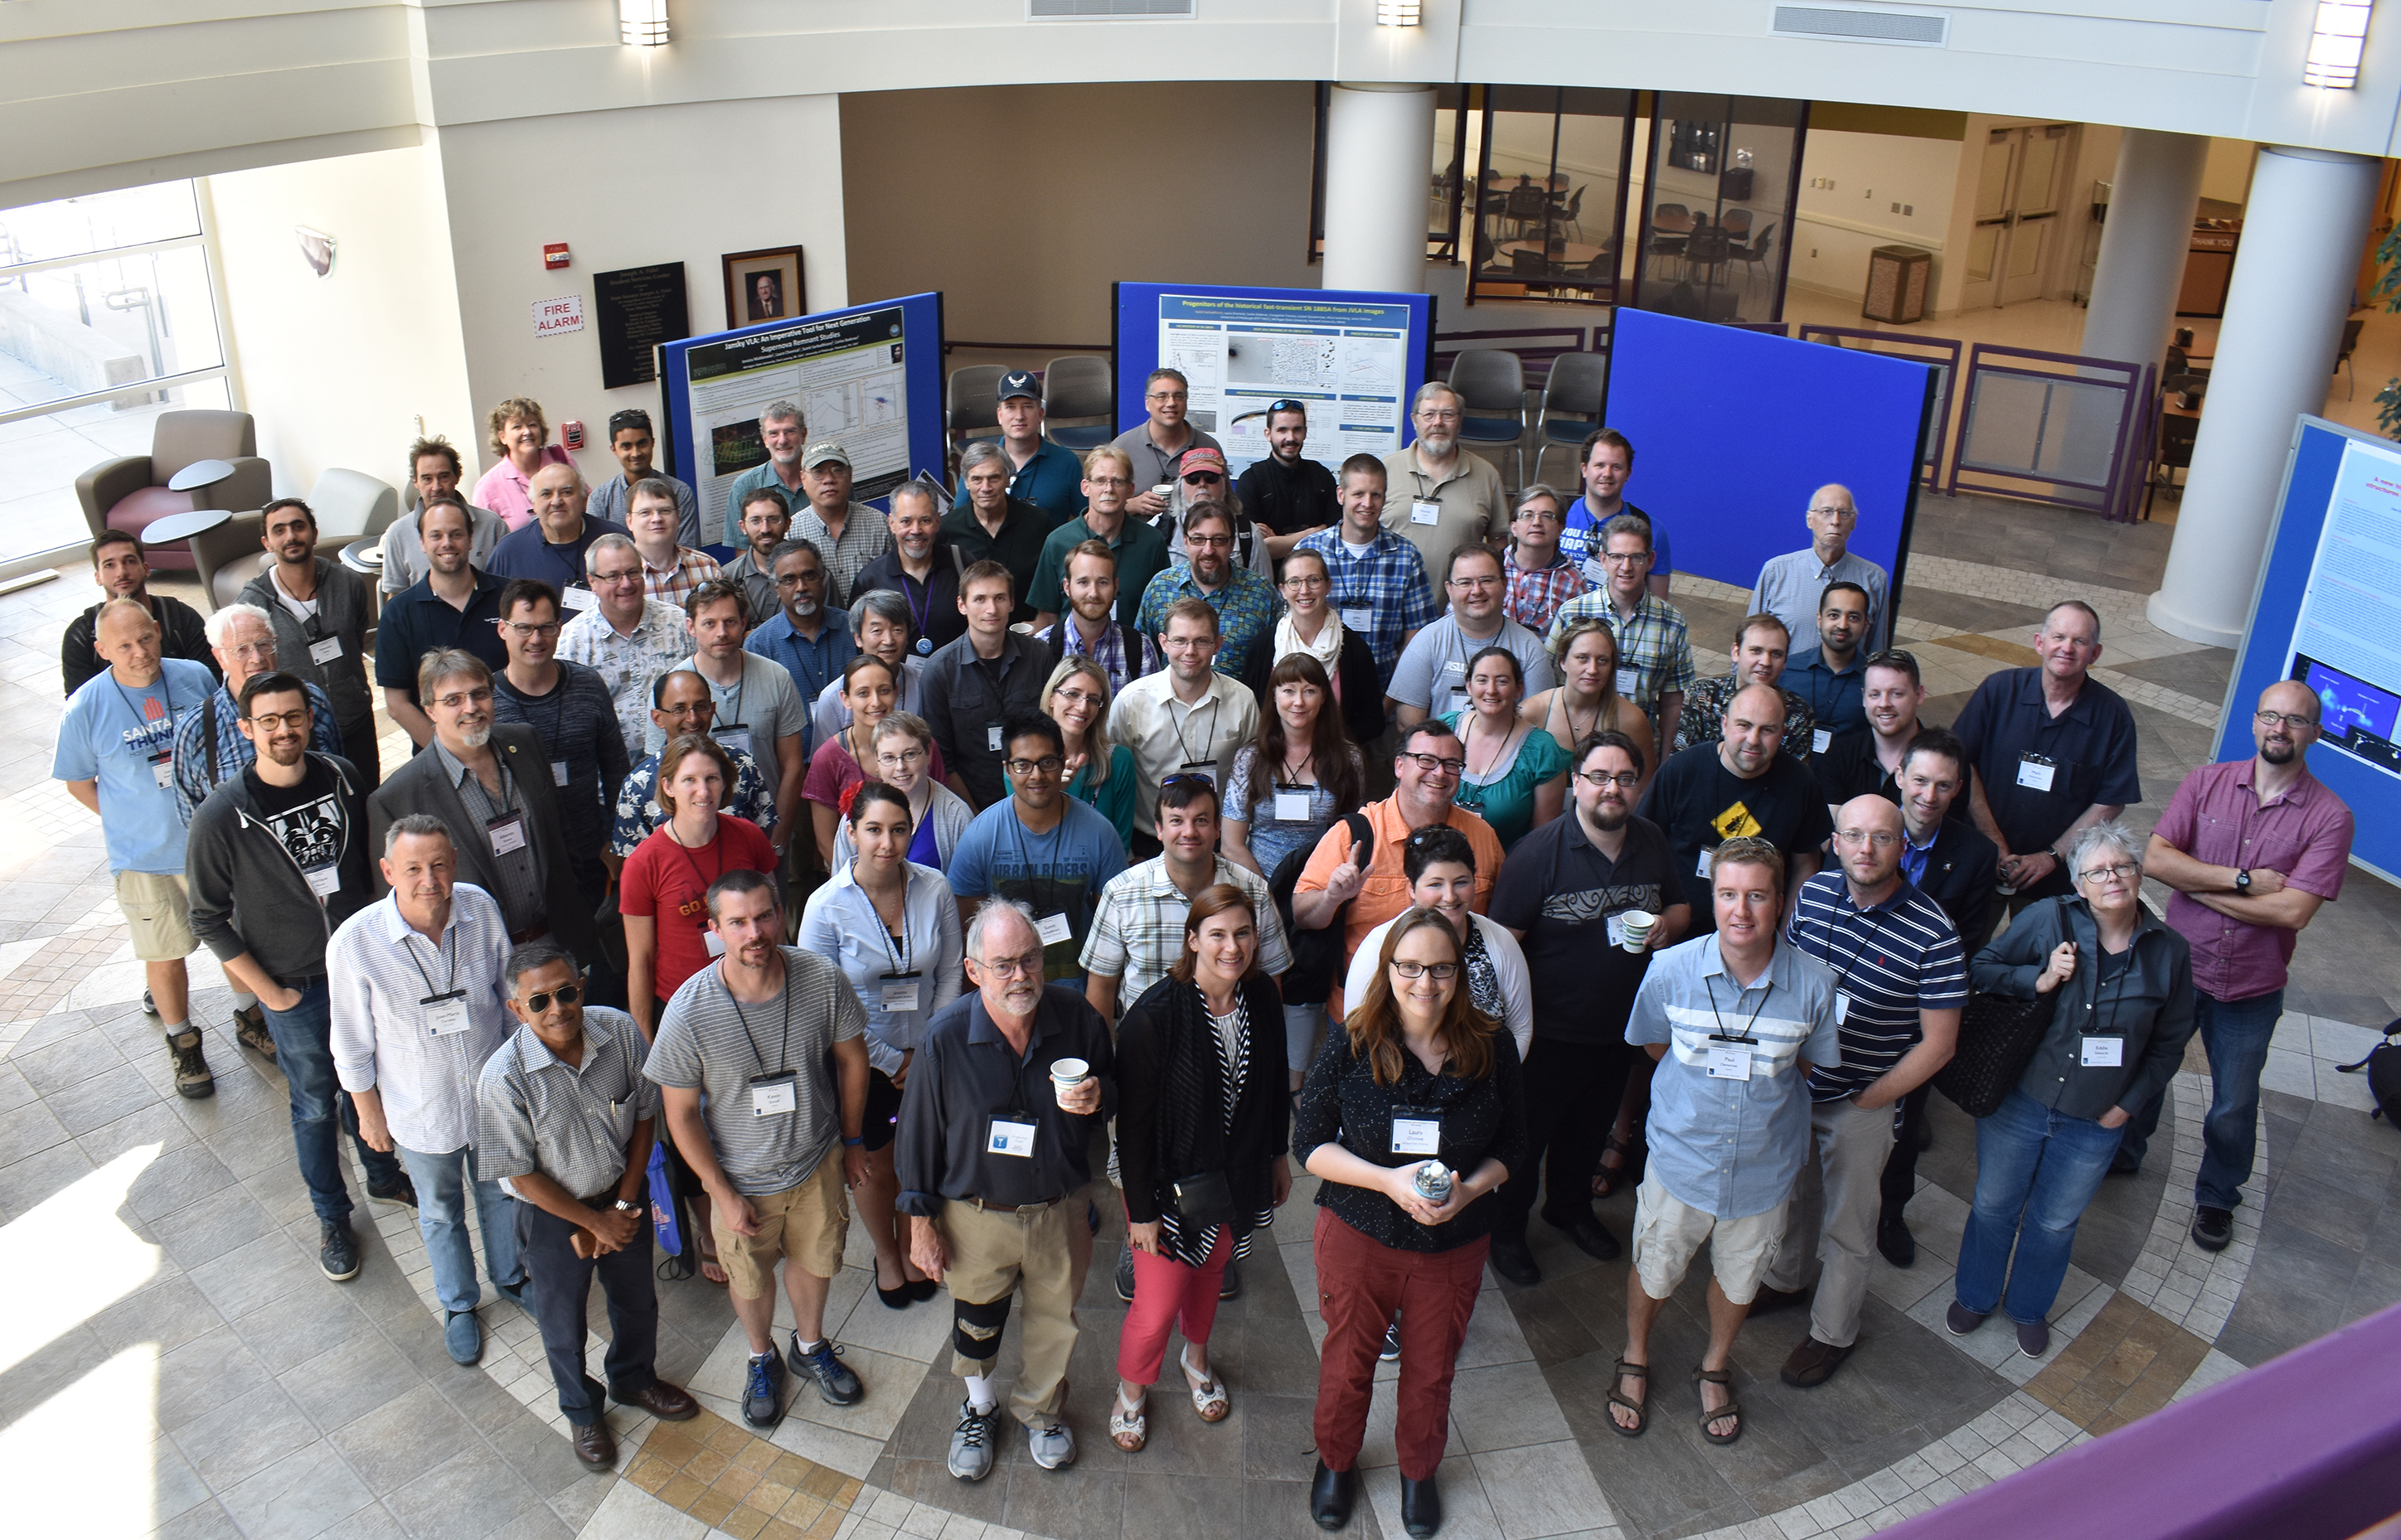 Group photograph at the June 2017 ngVLA Science and Technology meeting.